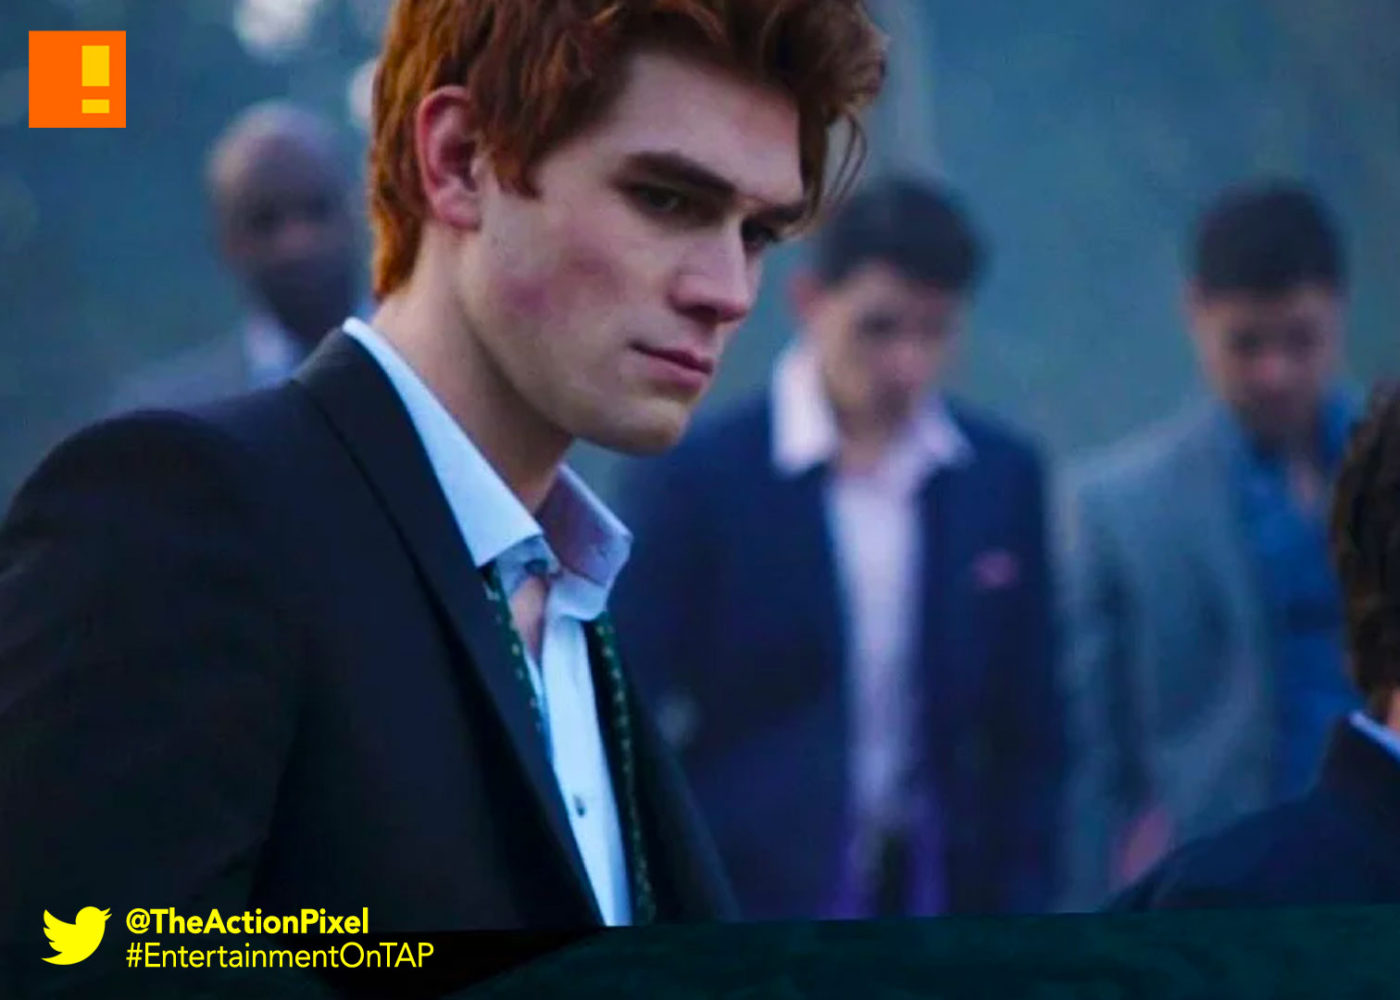 archie, riverdale, cw, the cw network, archie comics, trailer, deeper,teaser trailer